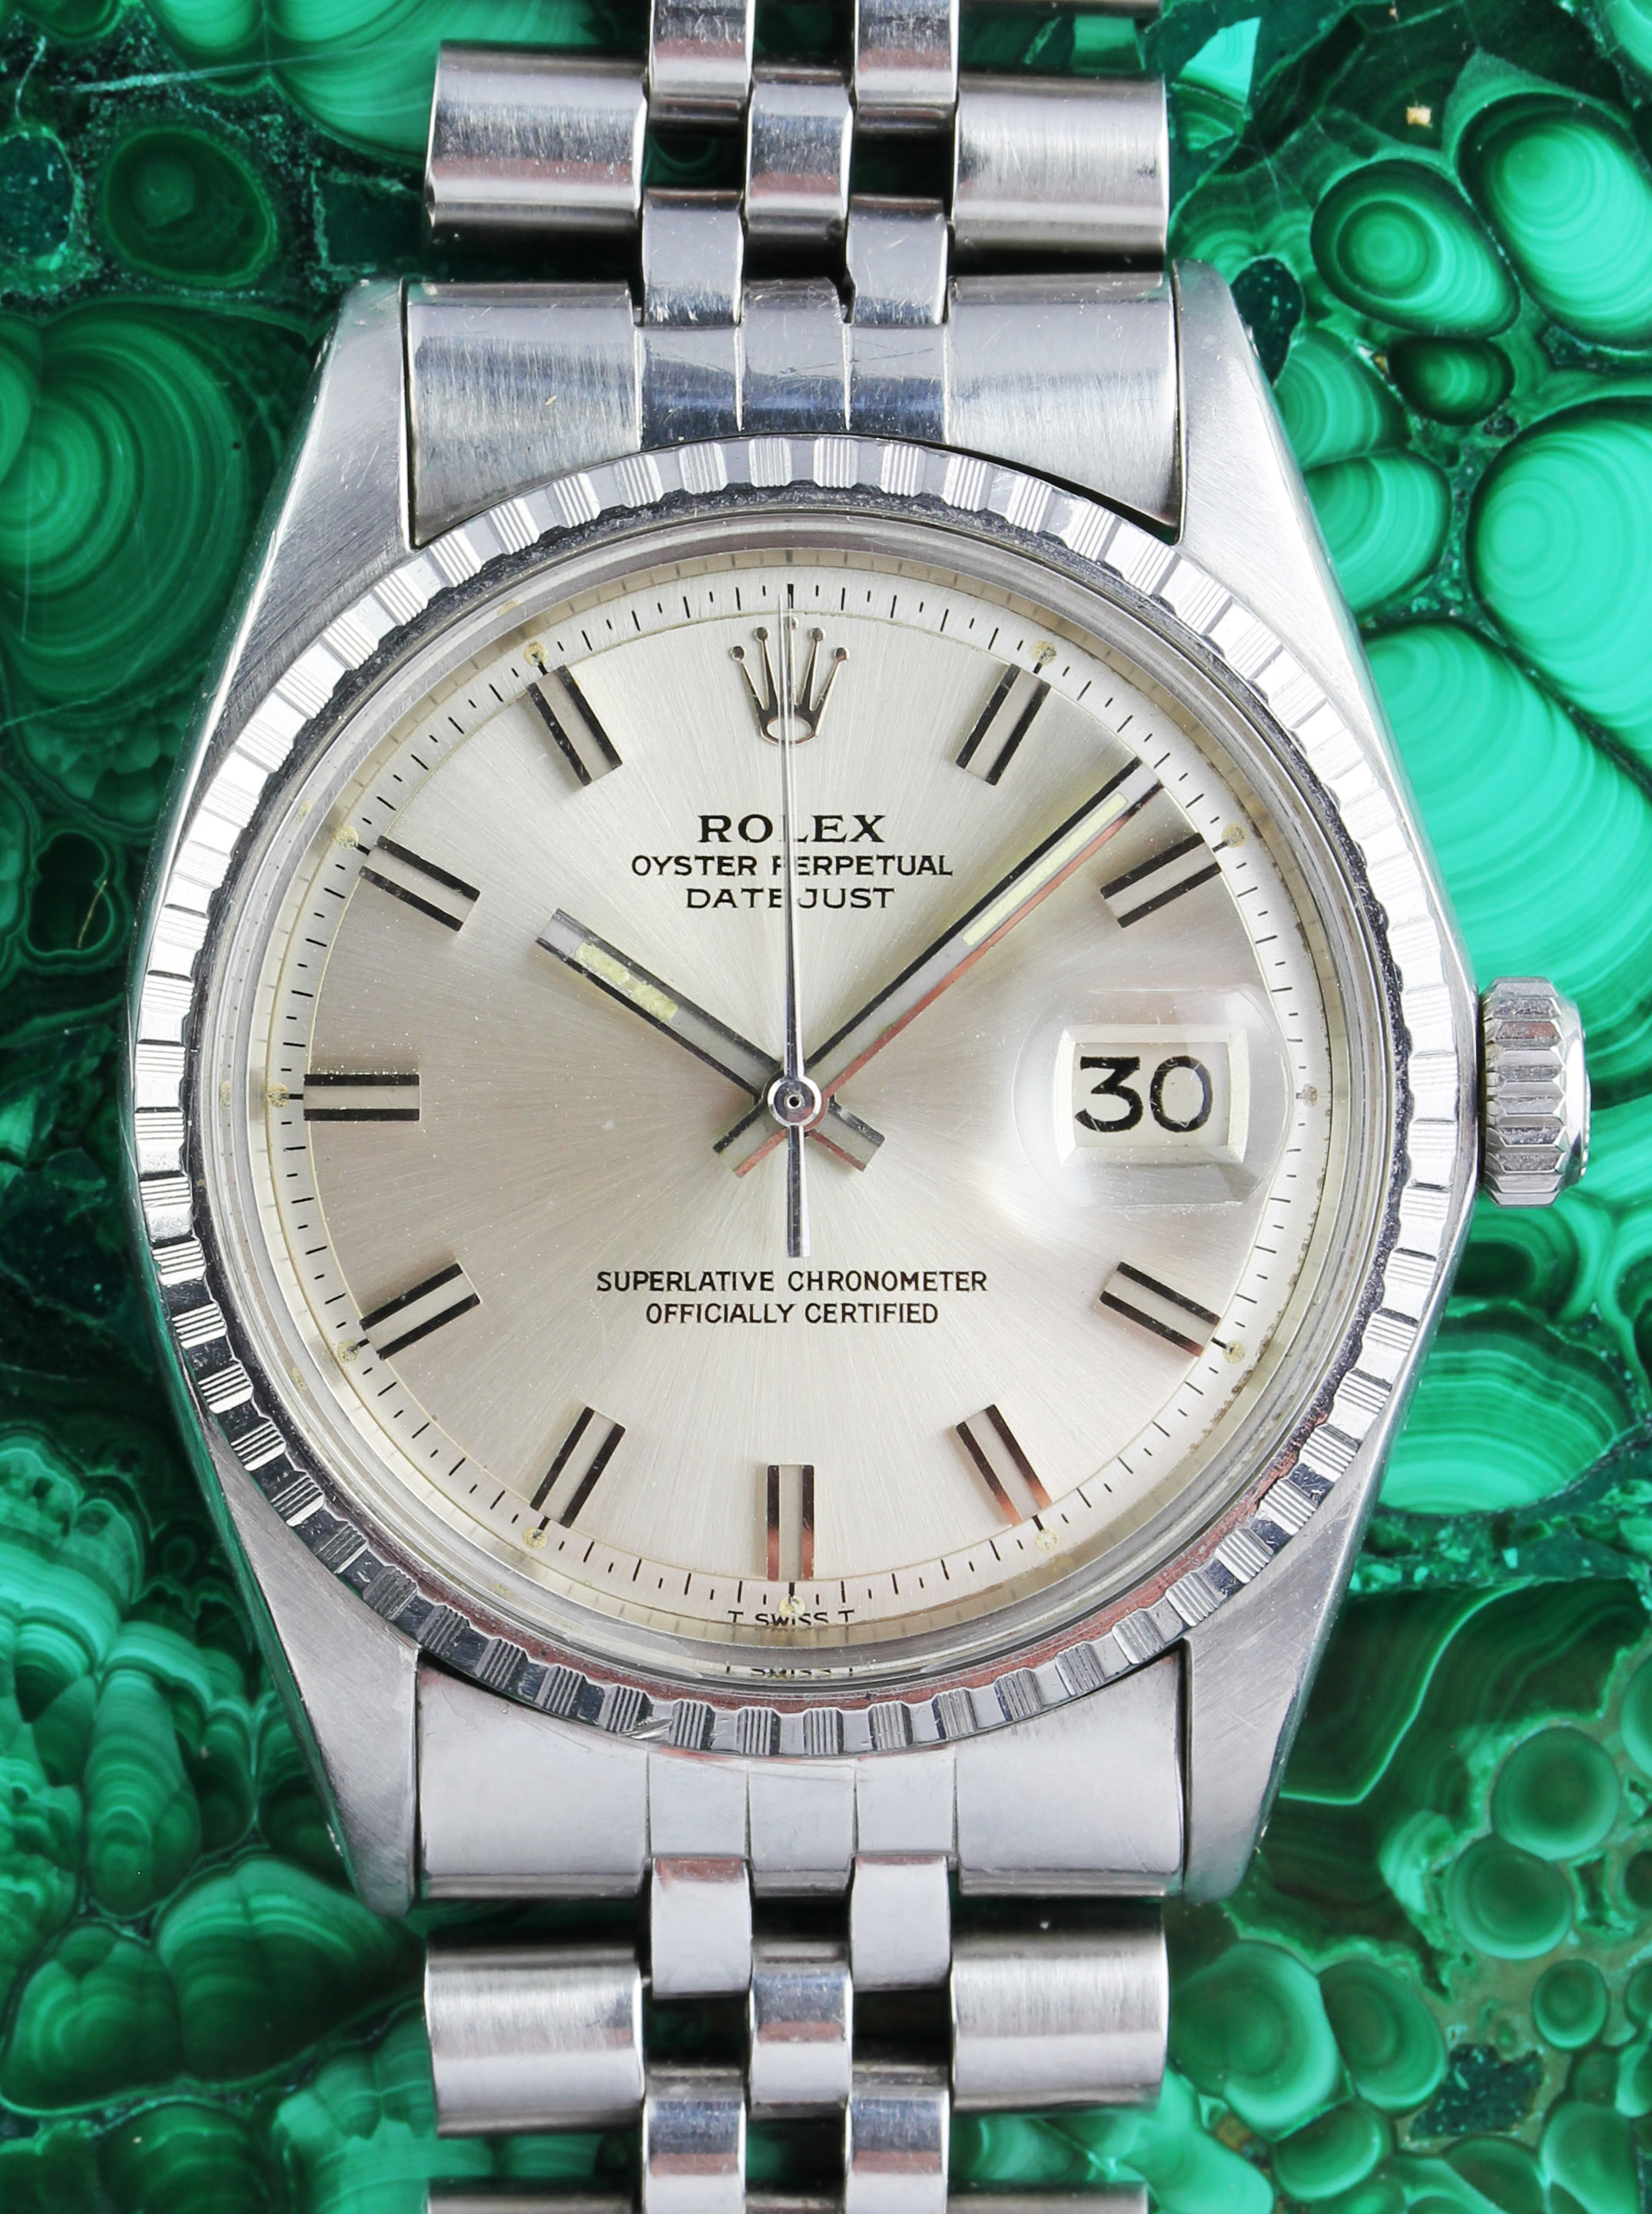 ROLEX Datejust from 1970 with original punched papers